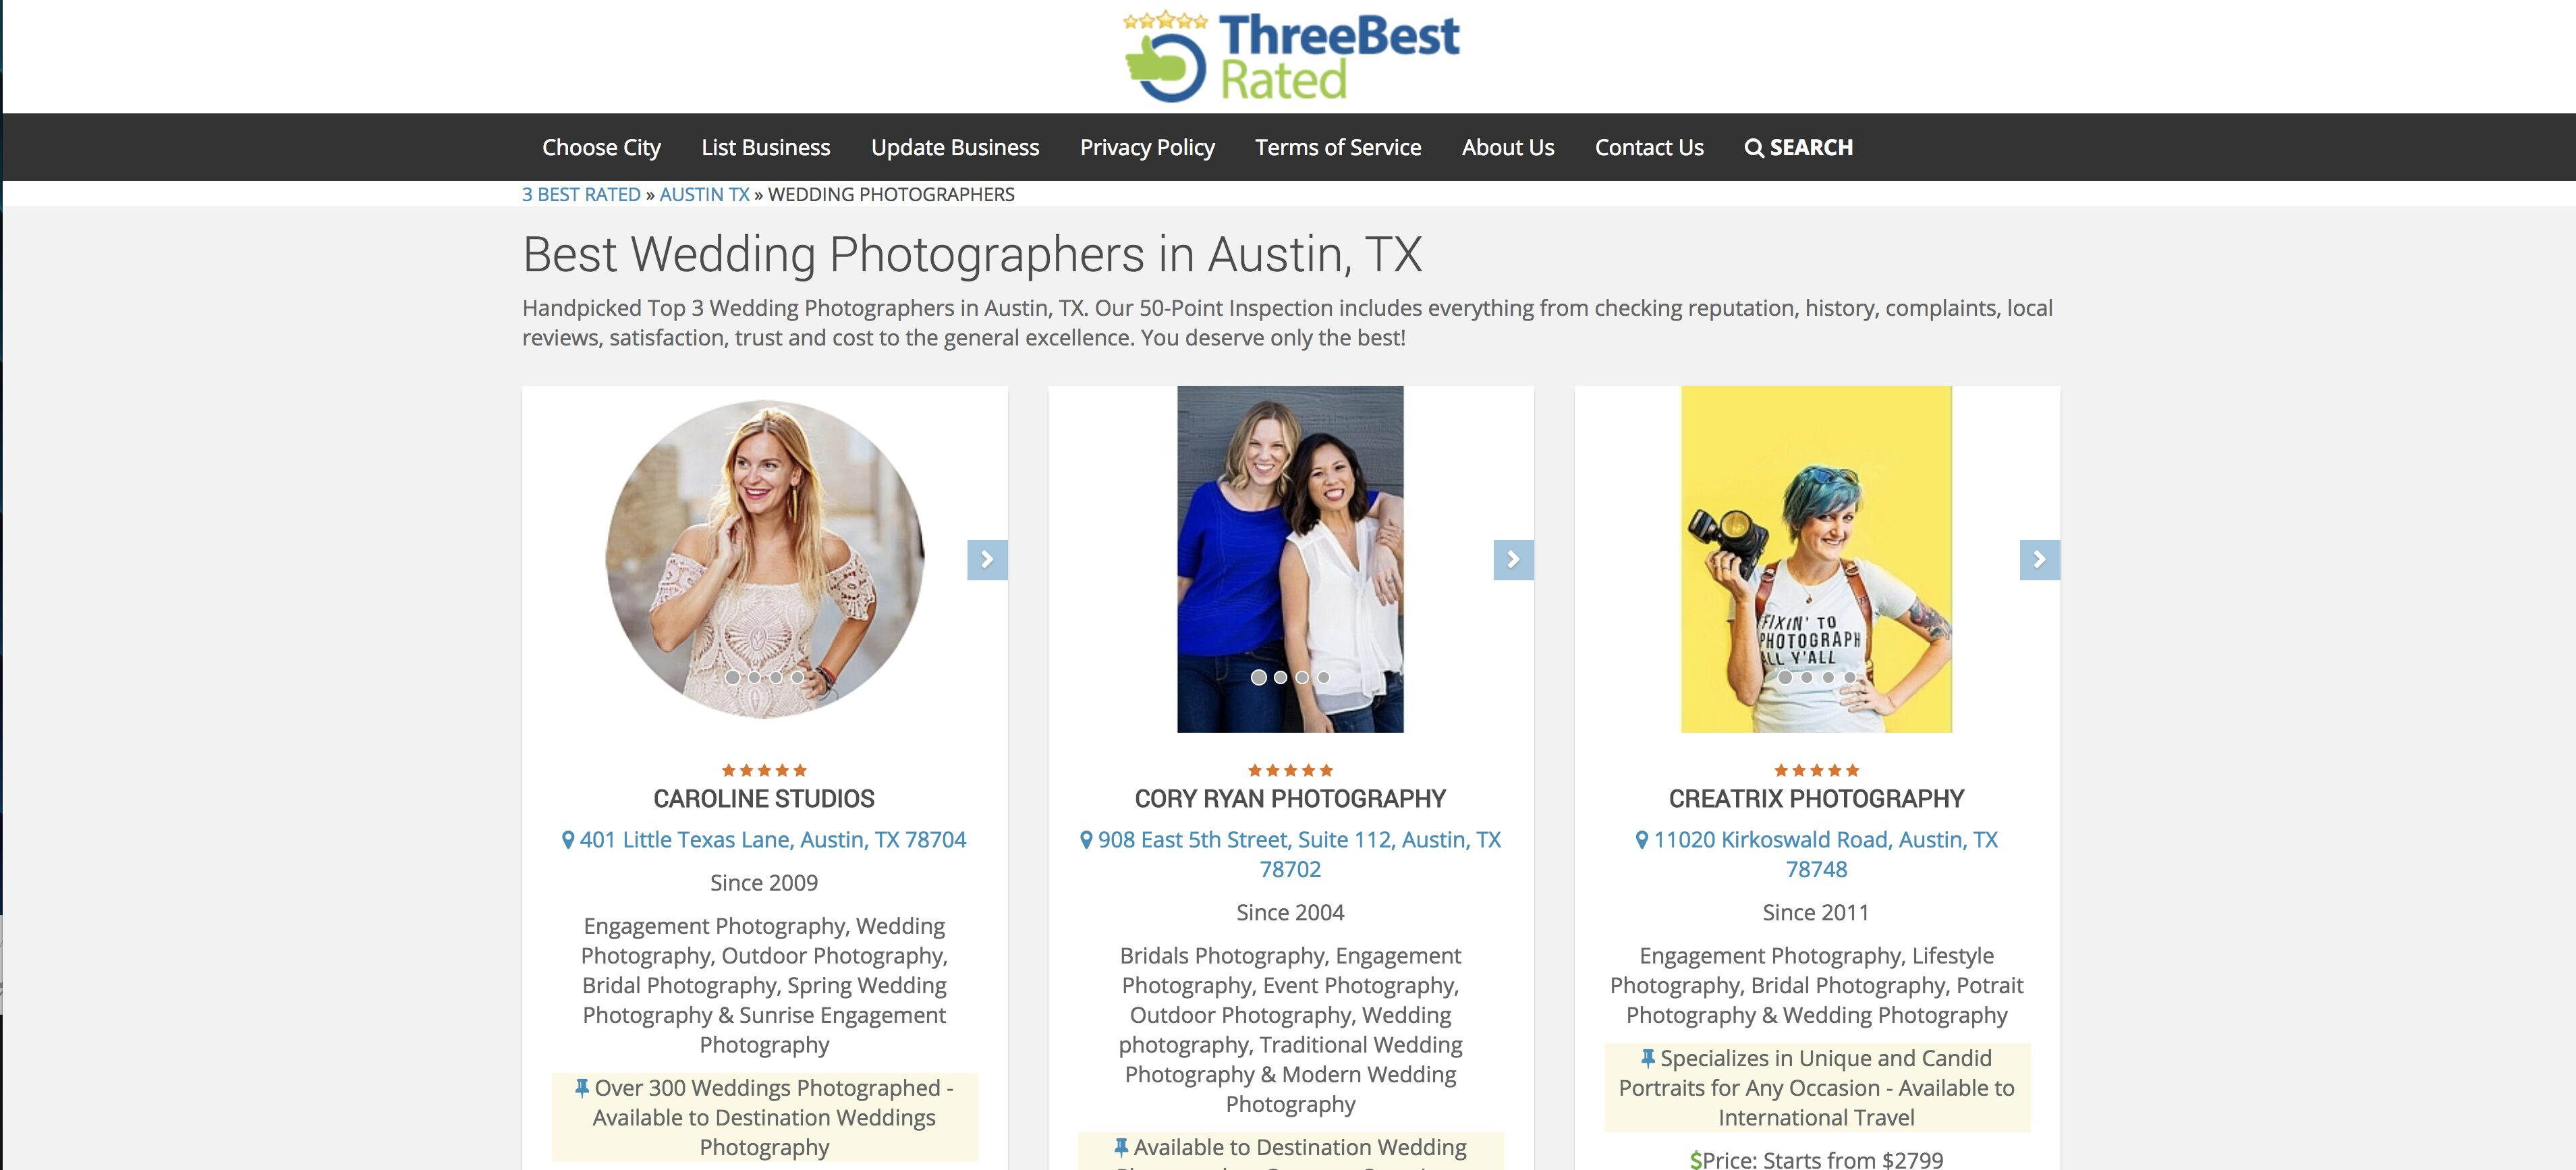 Top photographer in Austin?!